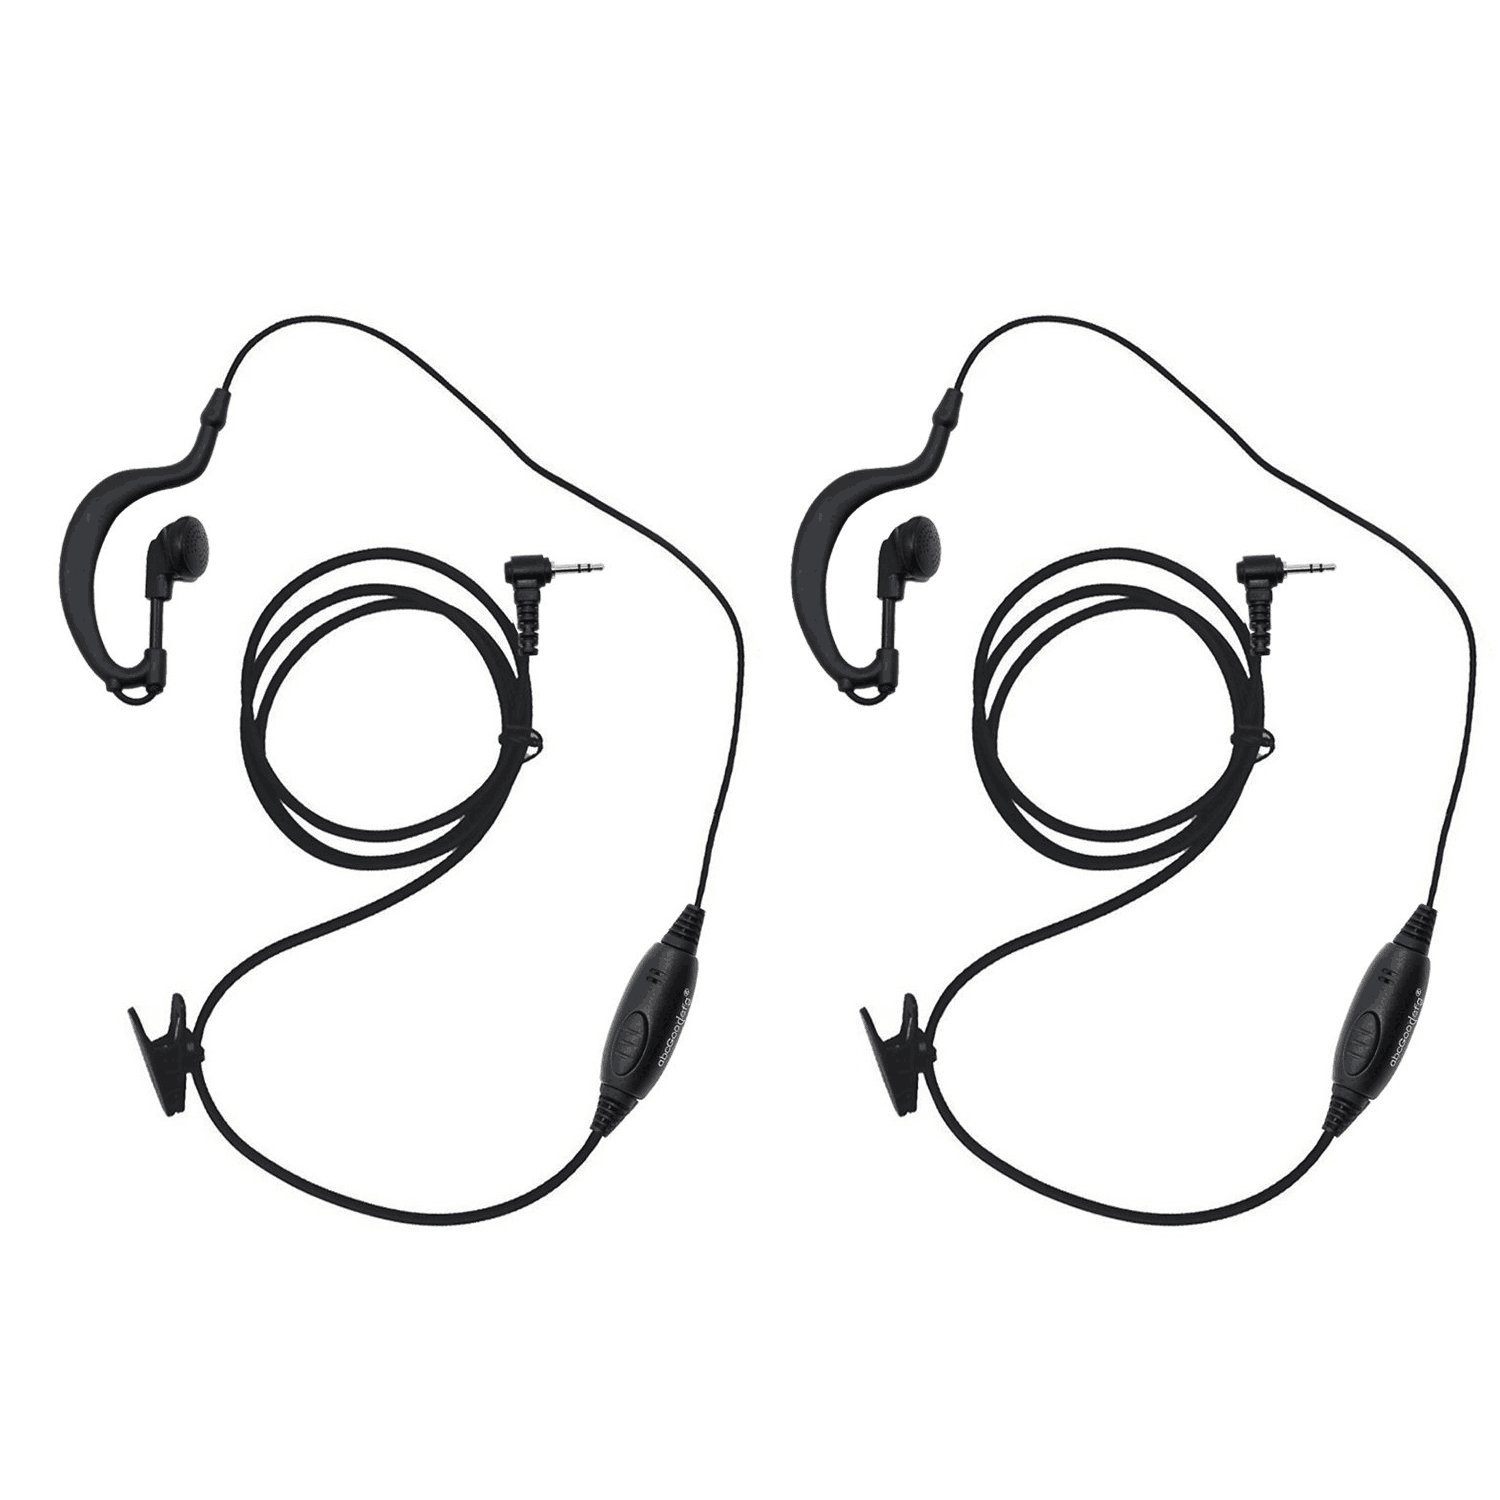 abcGoodefg G Shape Clip-Ear Headset Earpiece Mic for Motorola Talkabout MD200TPR MH230R MR350R MS350R MT350R MG160A MH230TPR MS350R MJ270R 2 Two Way Radio Walkie Talkie 1-pin (2Pack)